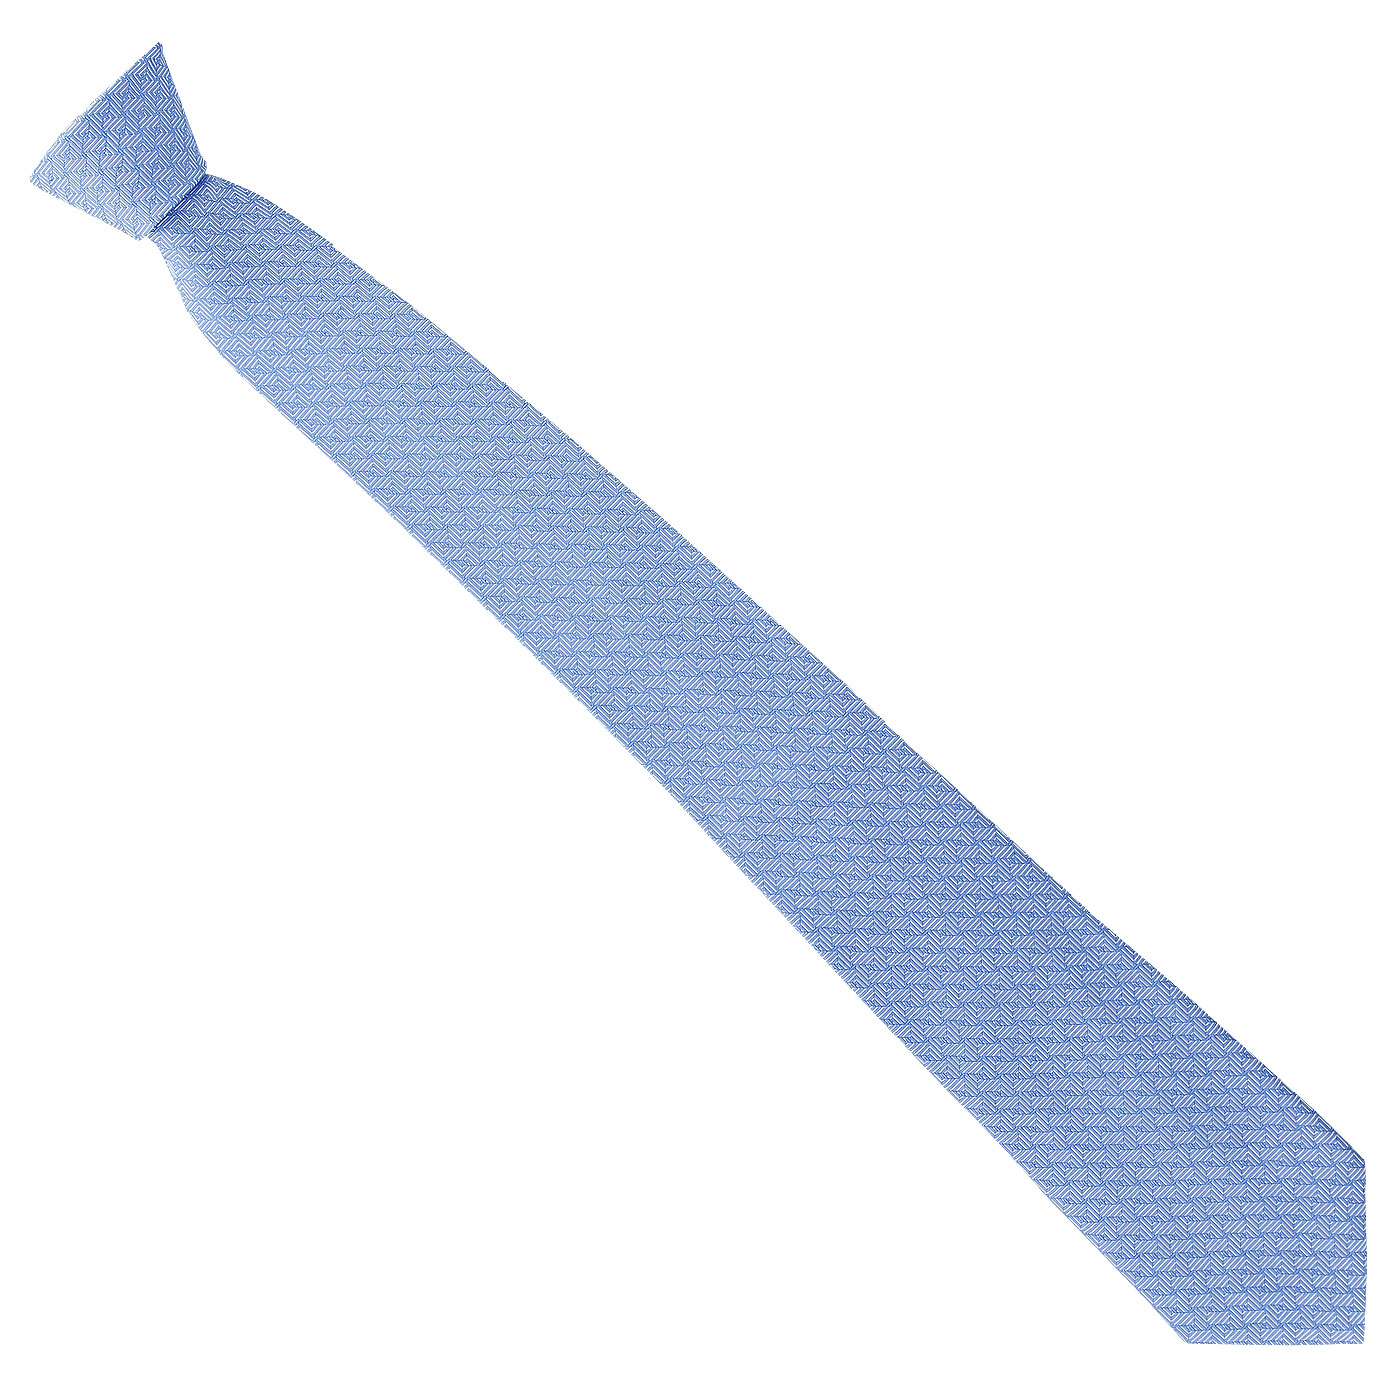 Purchase a Tie  Delivered in 48H with Webmenshirts.com